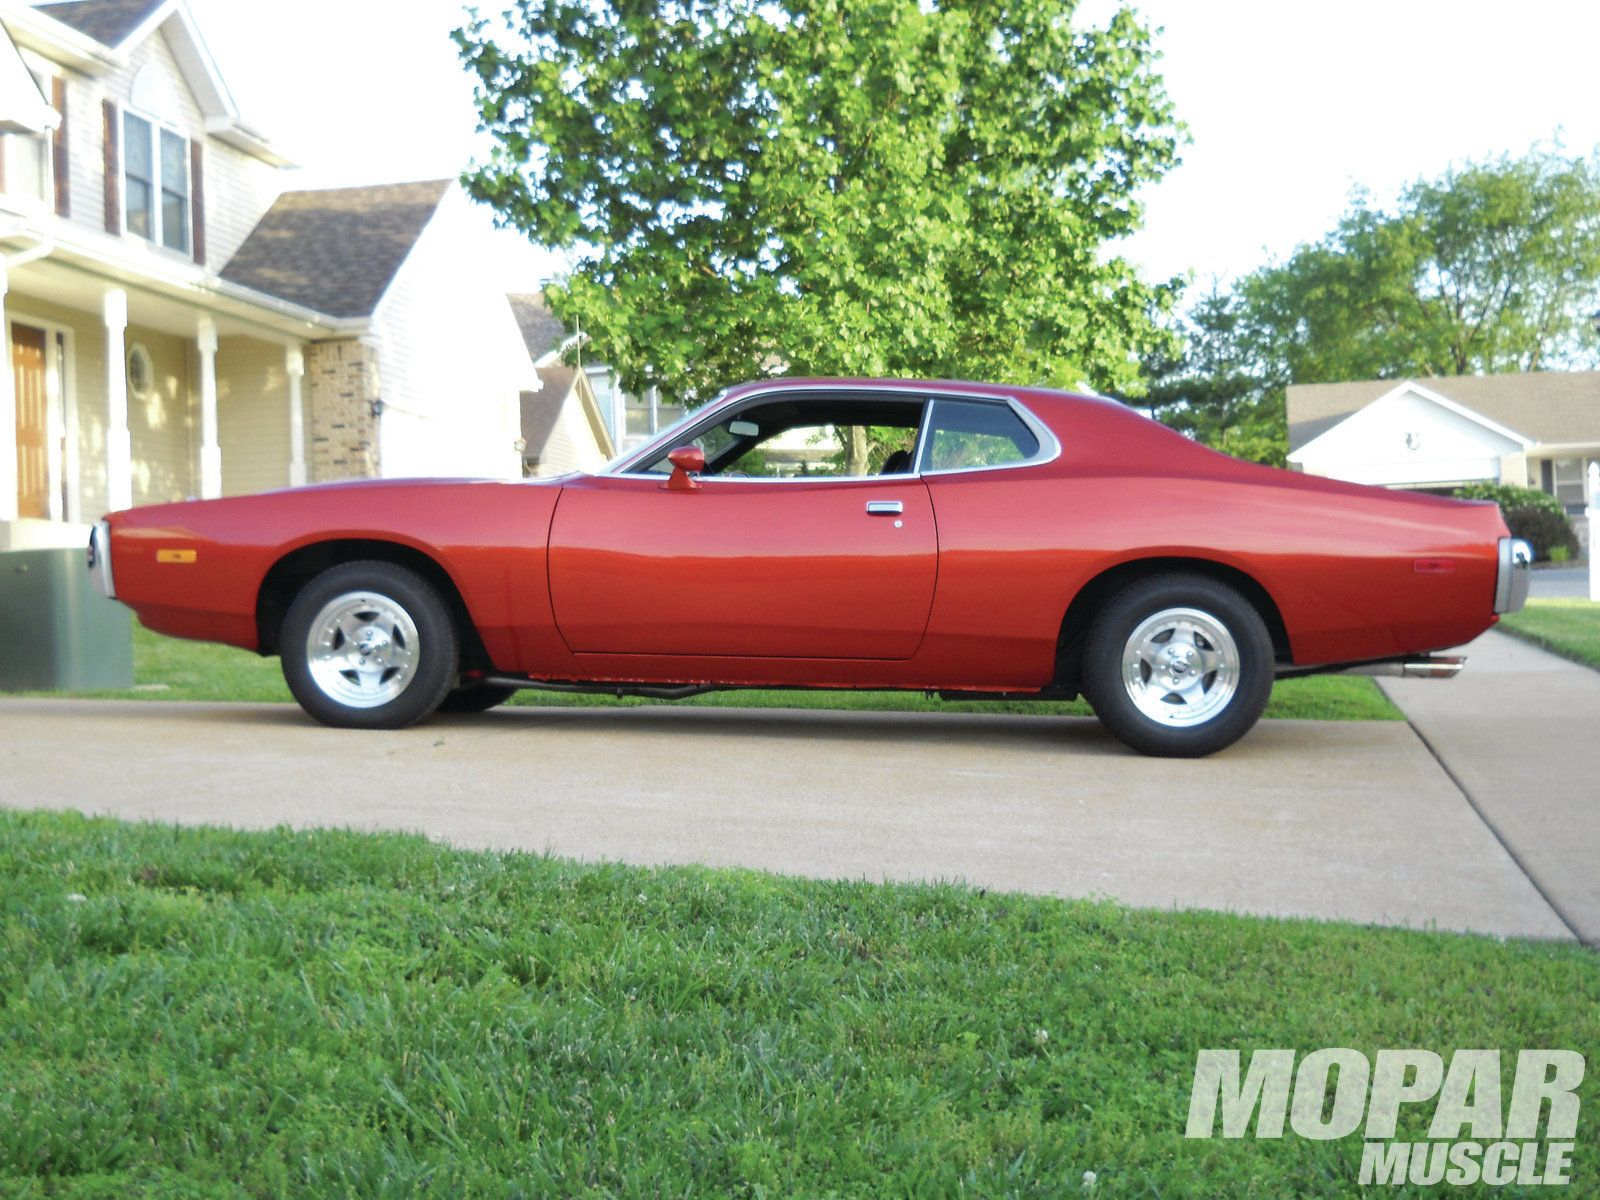 1973 Dodge Charger Red With Images Dodge Muscle Cars